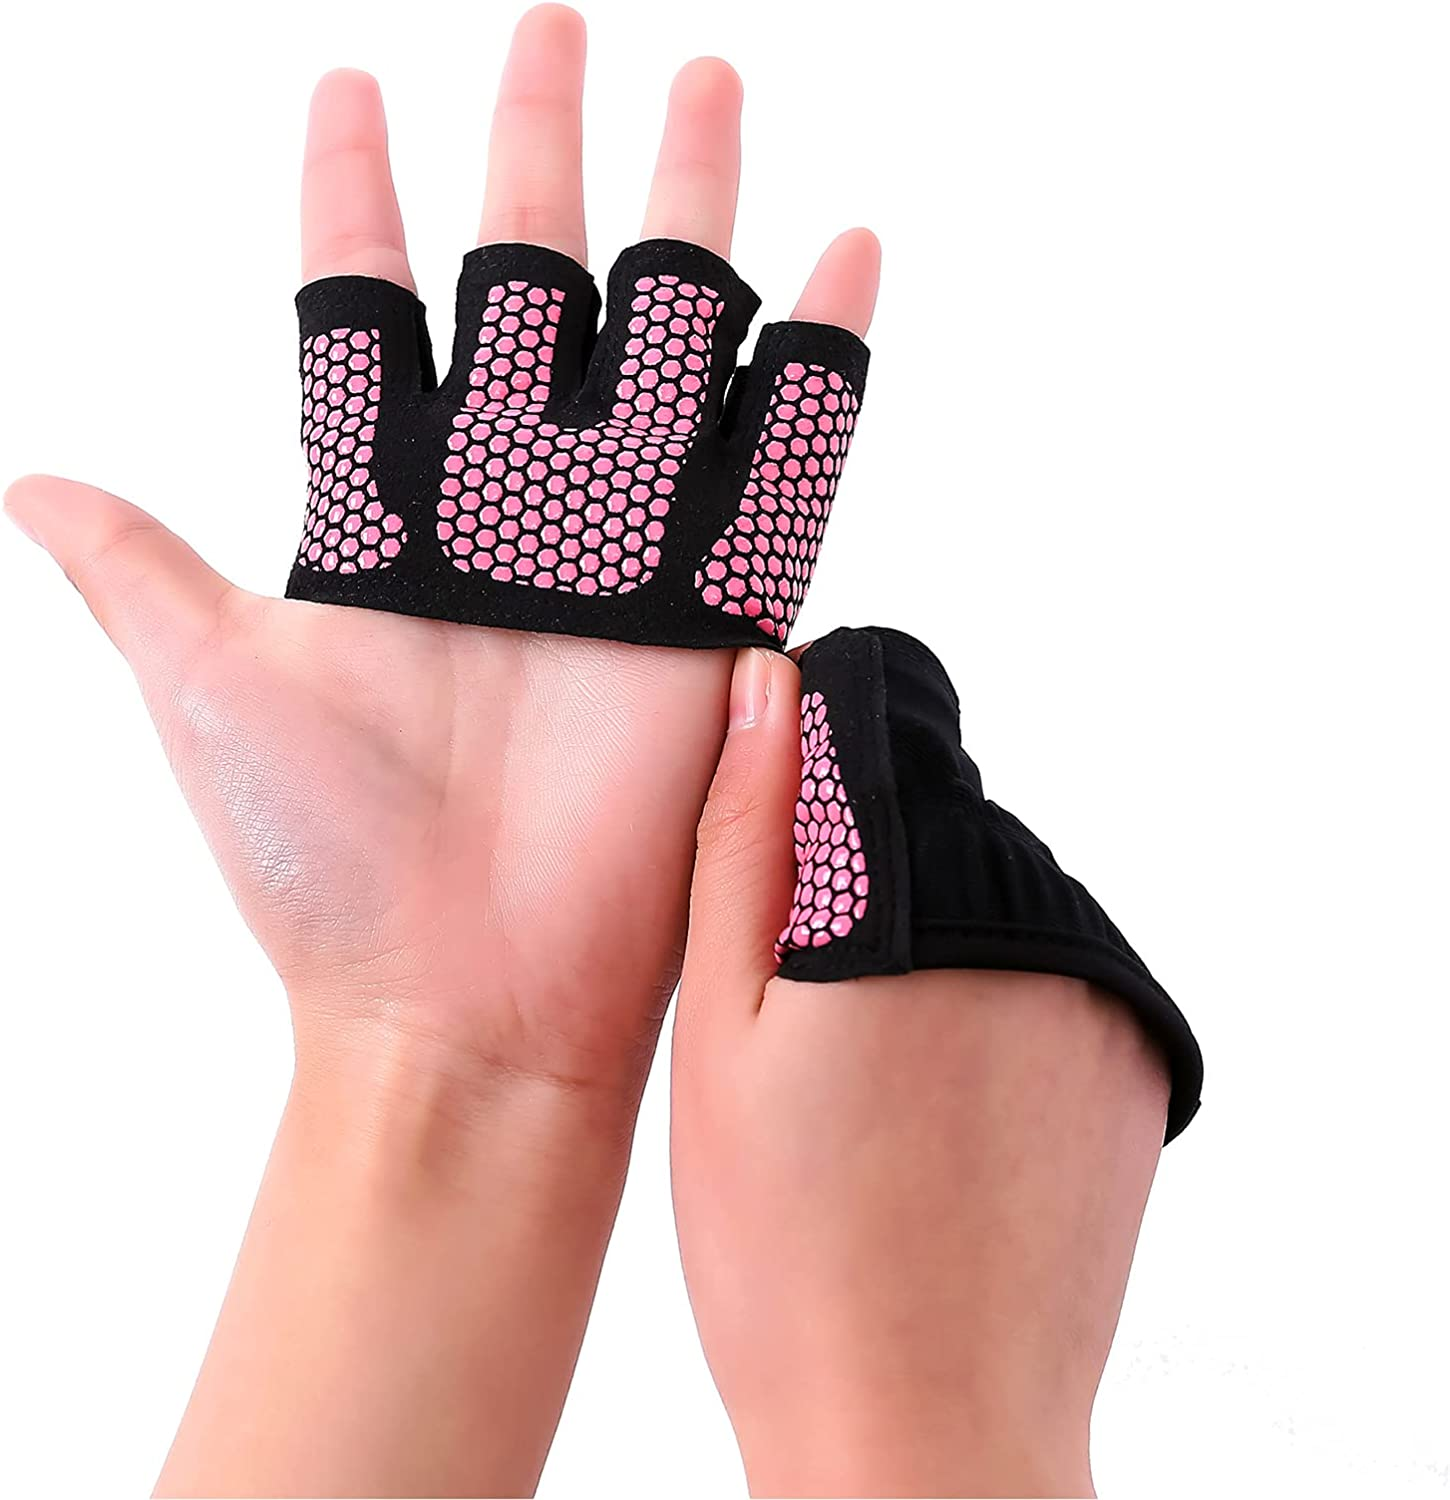 Lorpect Weight Lifting Discount is also underway Gym Workout Animer and price revision Gloves Glove Partial J Women